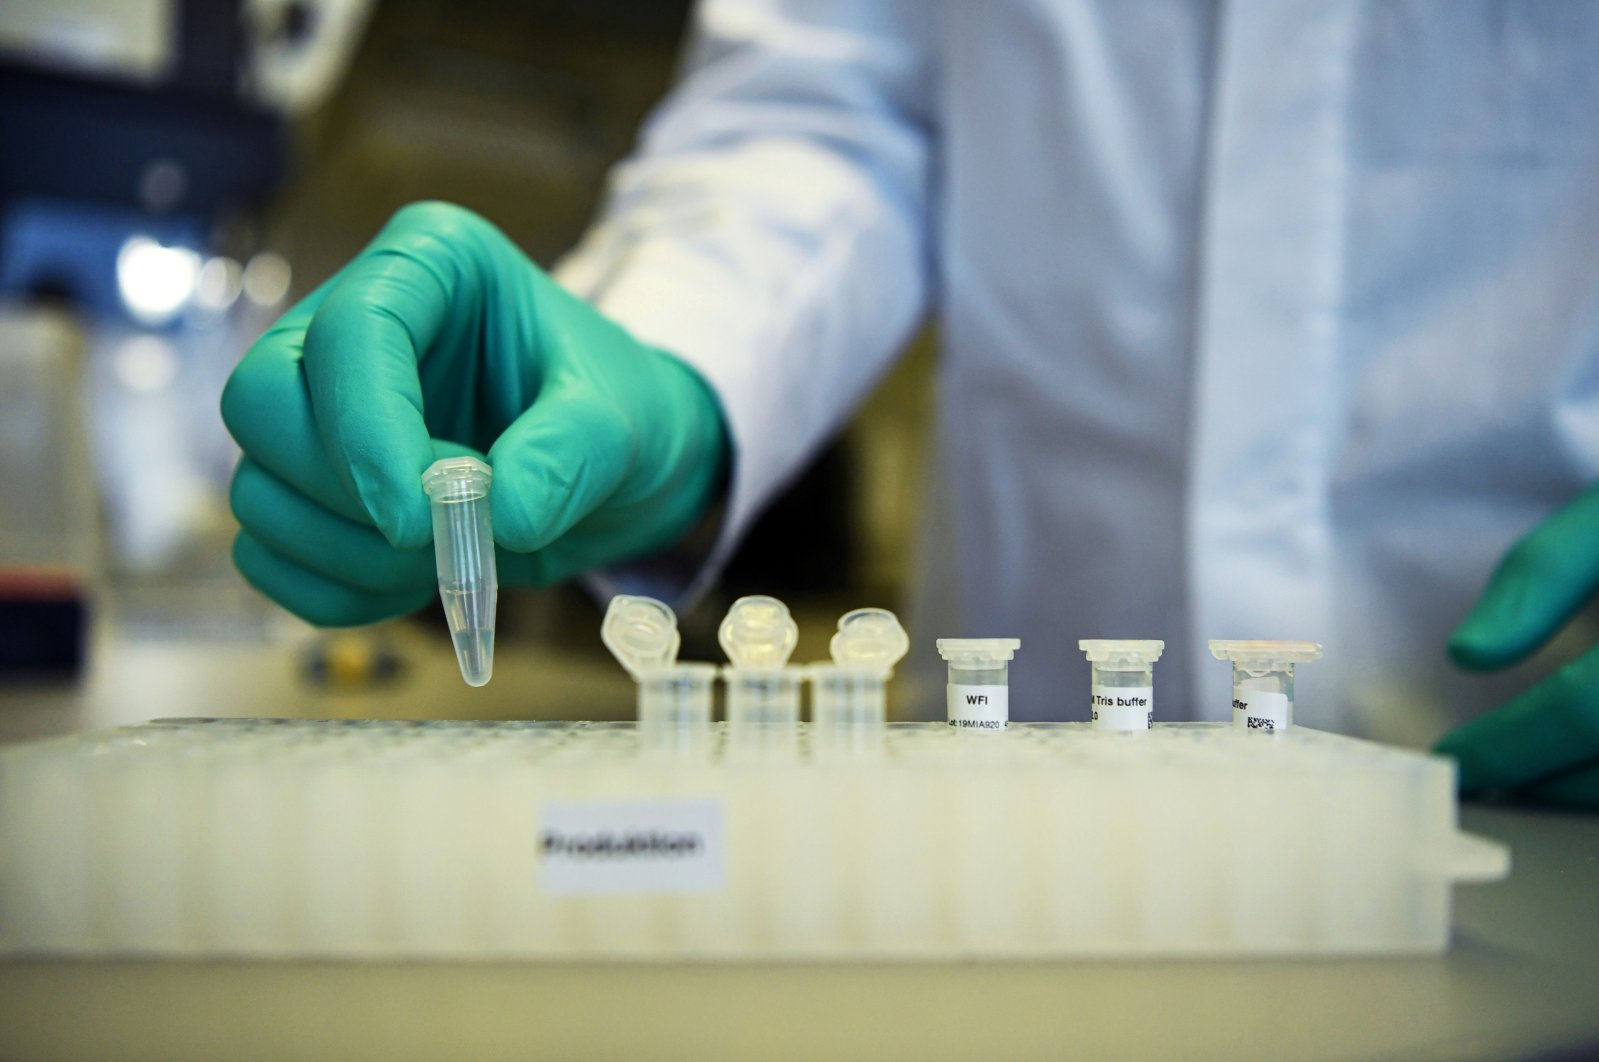 An employee of the German biopharmaceutical company CureVac, demonstrates research workflow on a vaccine for the coronavirus (COVID-19) disease at a laboratory in Tuebingen, Germany, March 12, 2020. (Reuters Photo)